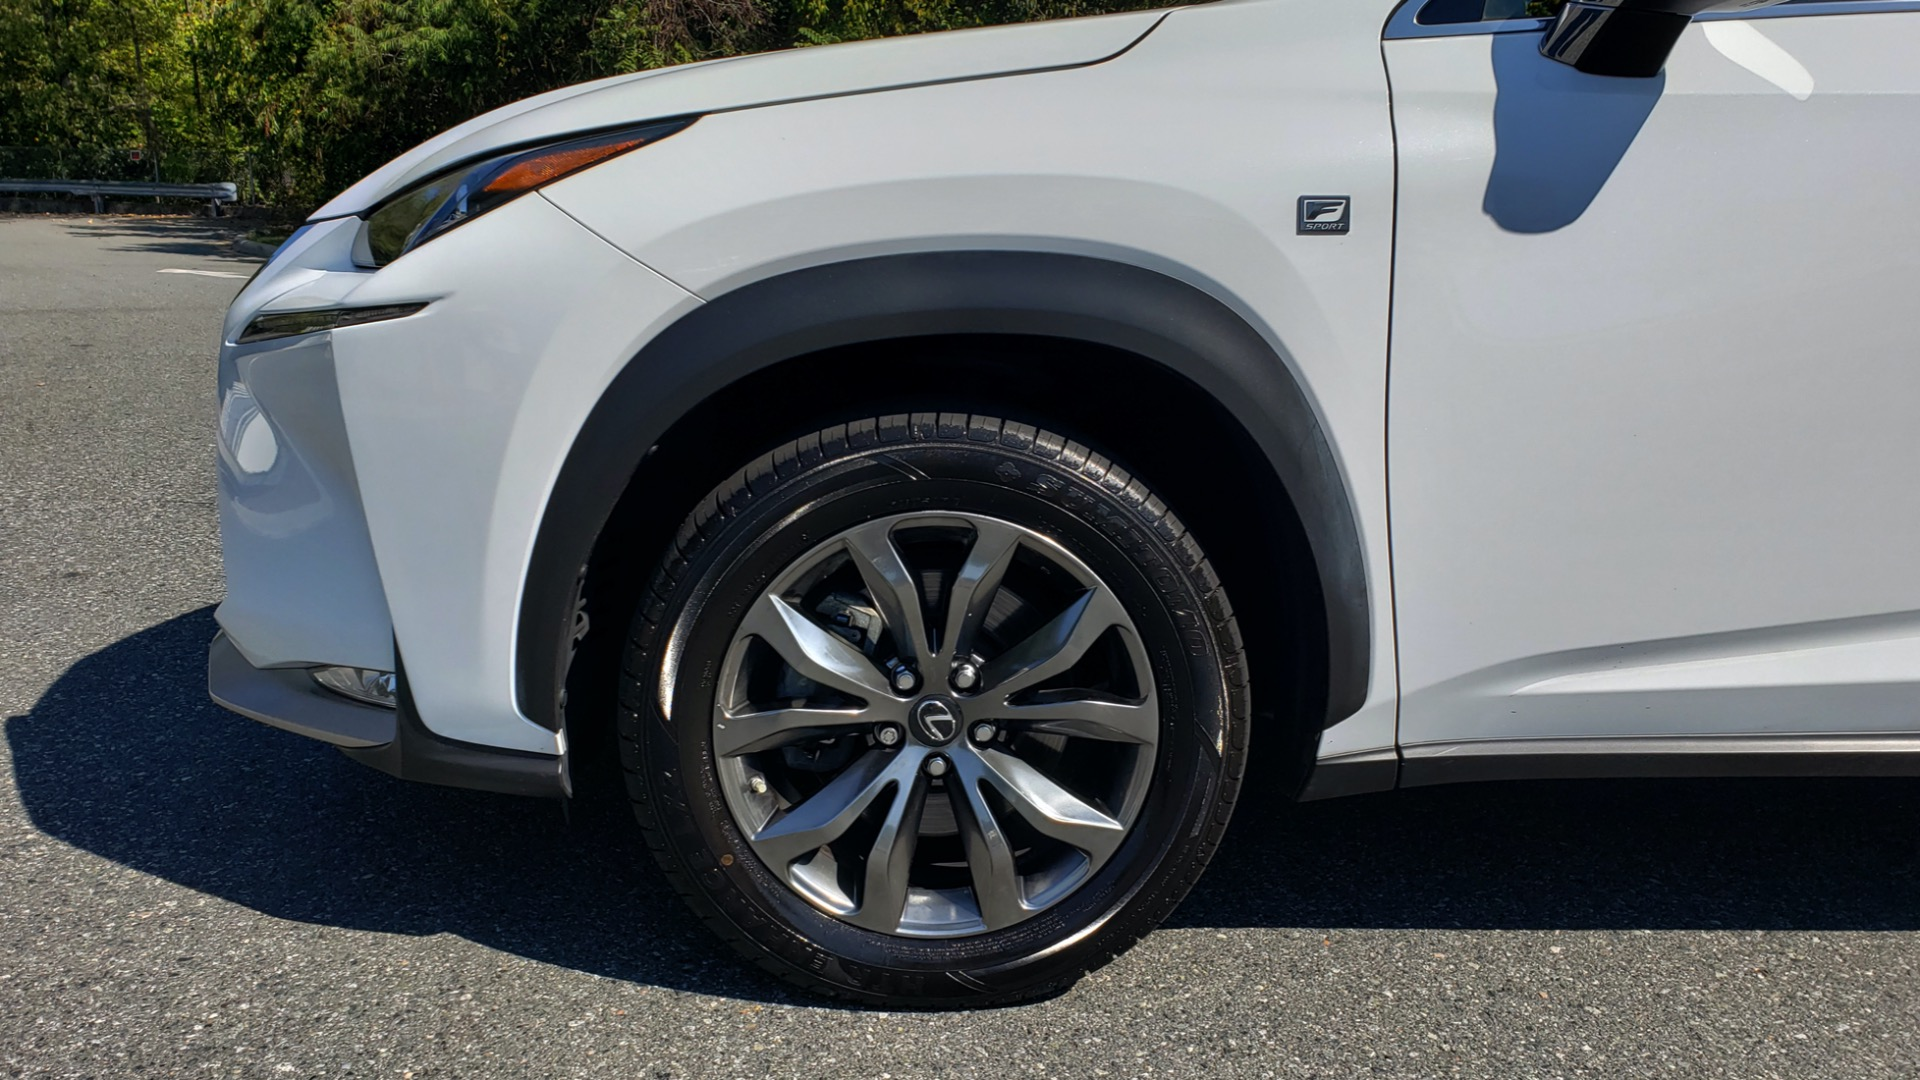 Used 2016 Lexus NX 200t F-SPORT / BACK-UP CAMERA / 18 INCH WHEELS for sale Sold at Formula Imports in Charlotte NC 28227 6